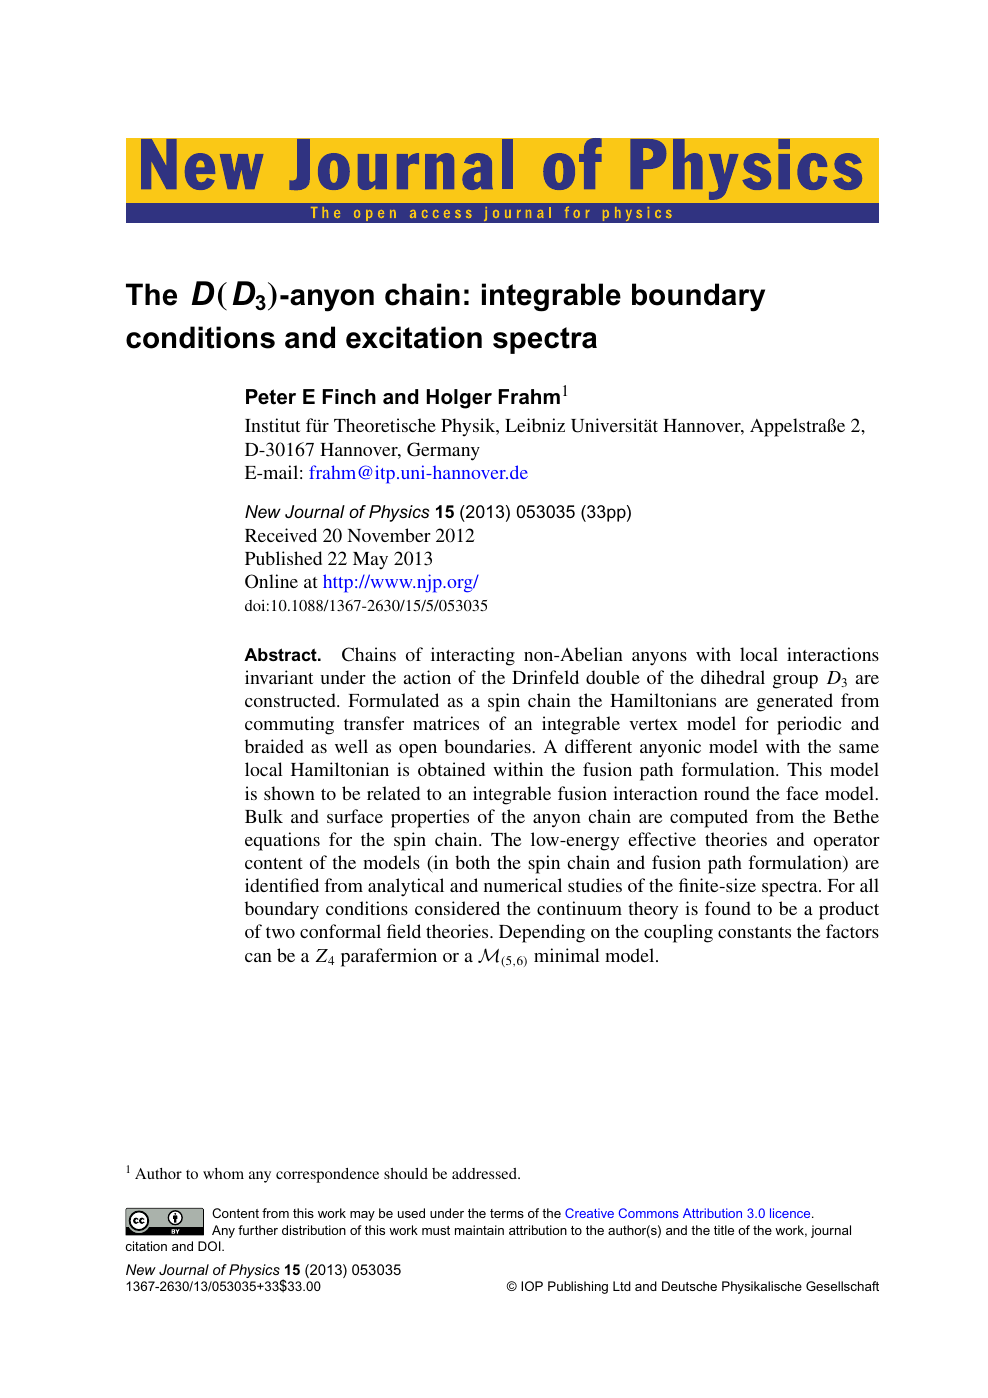 The D ( D 3 )-anyon chain: integrable boundary conditions